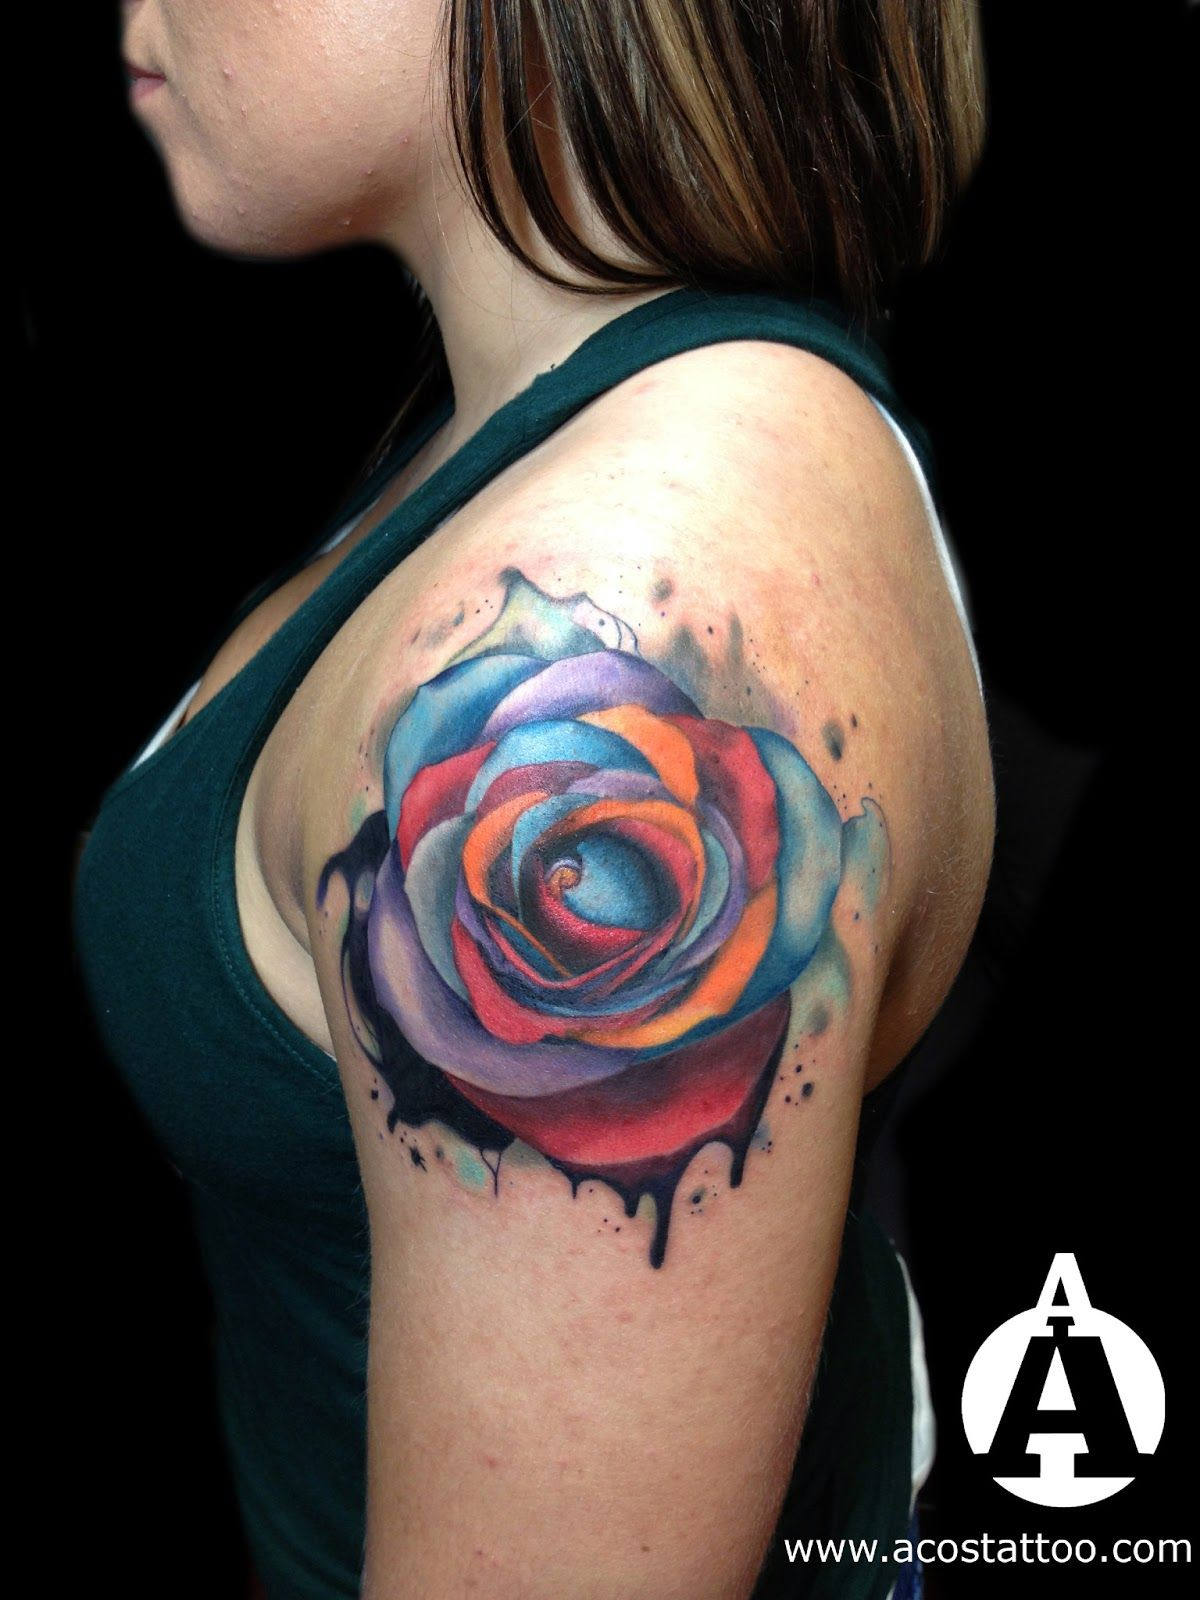 Watercolor tattoo artists in houston texas - Watercolor Rose Tattoo I Love The Colors